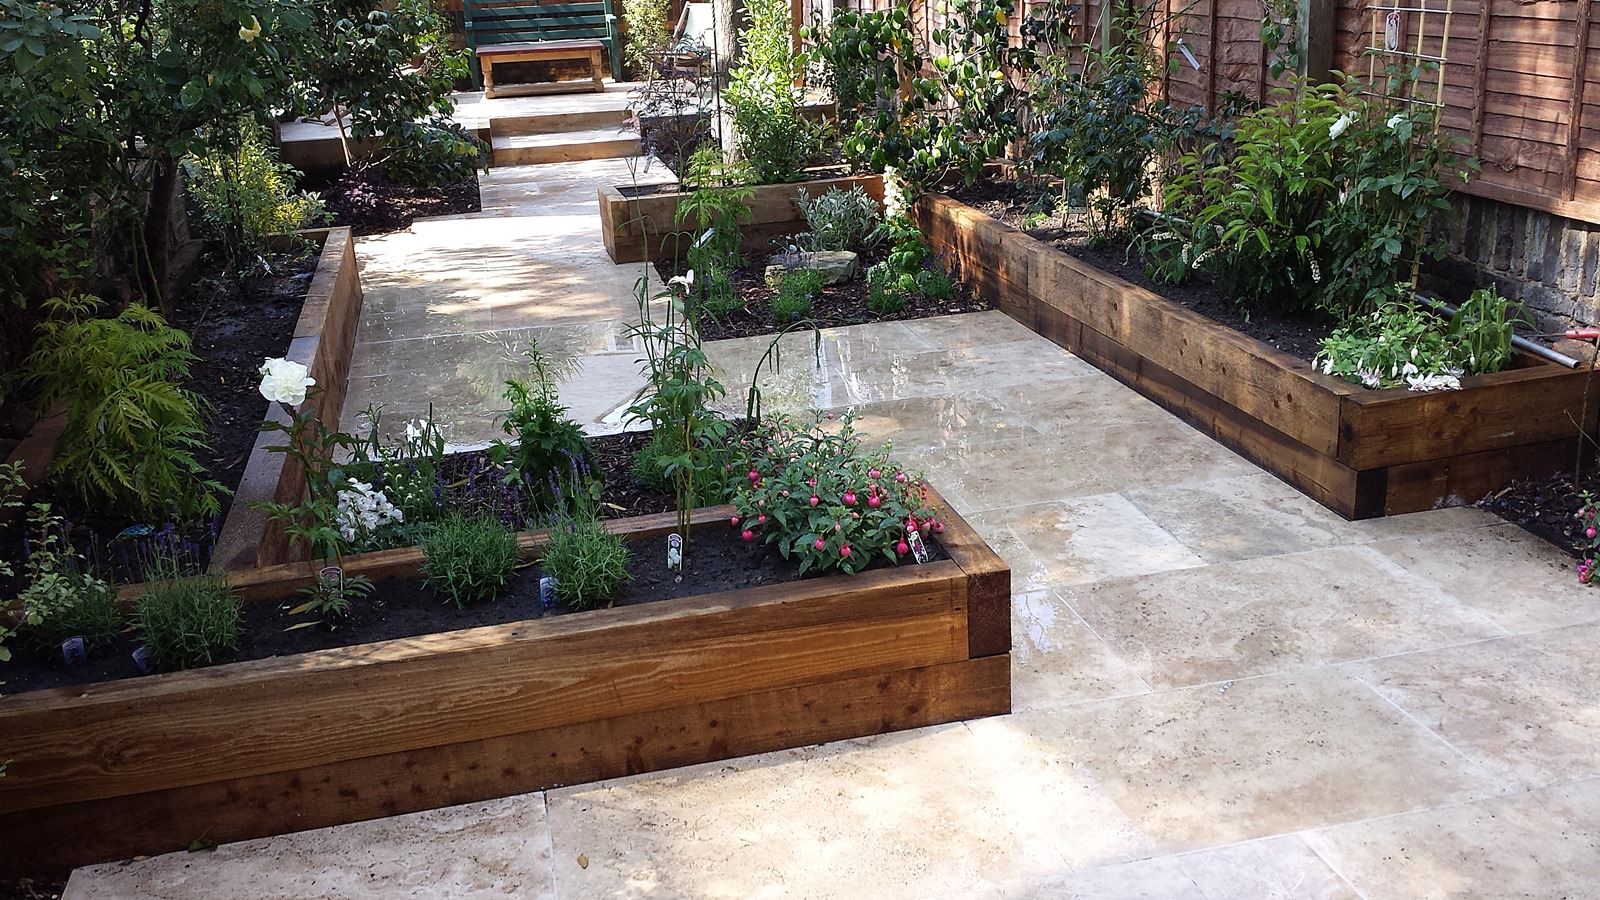 Landscaping archives london garden blog for Garden patio ideas